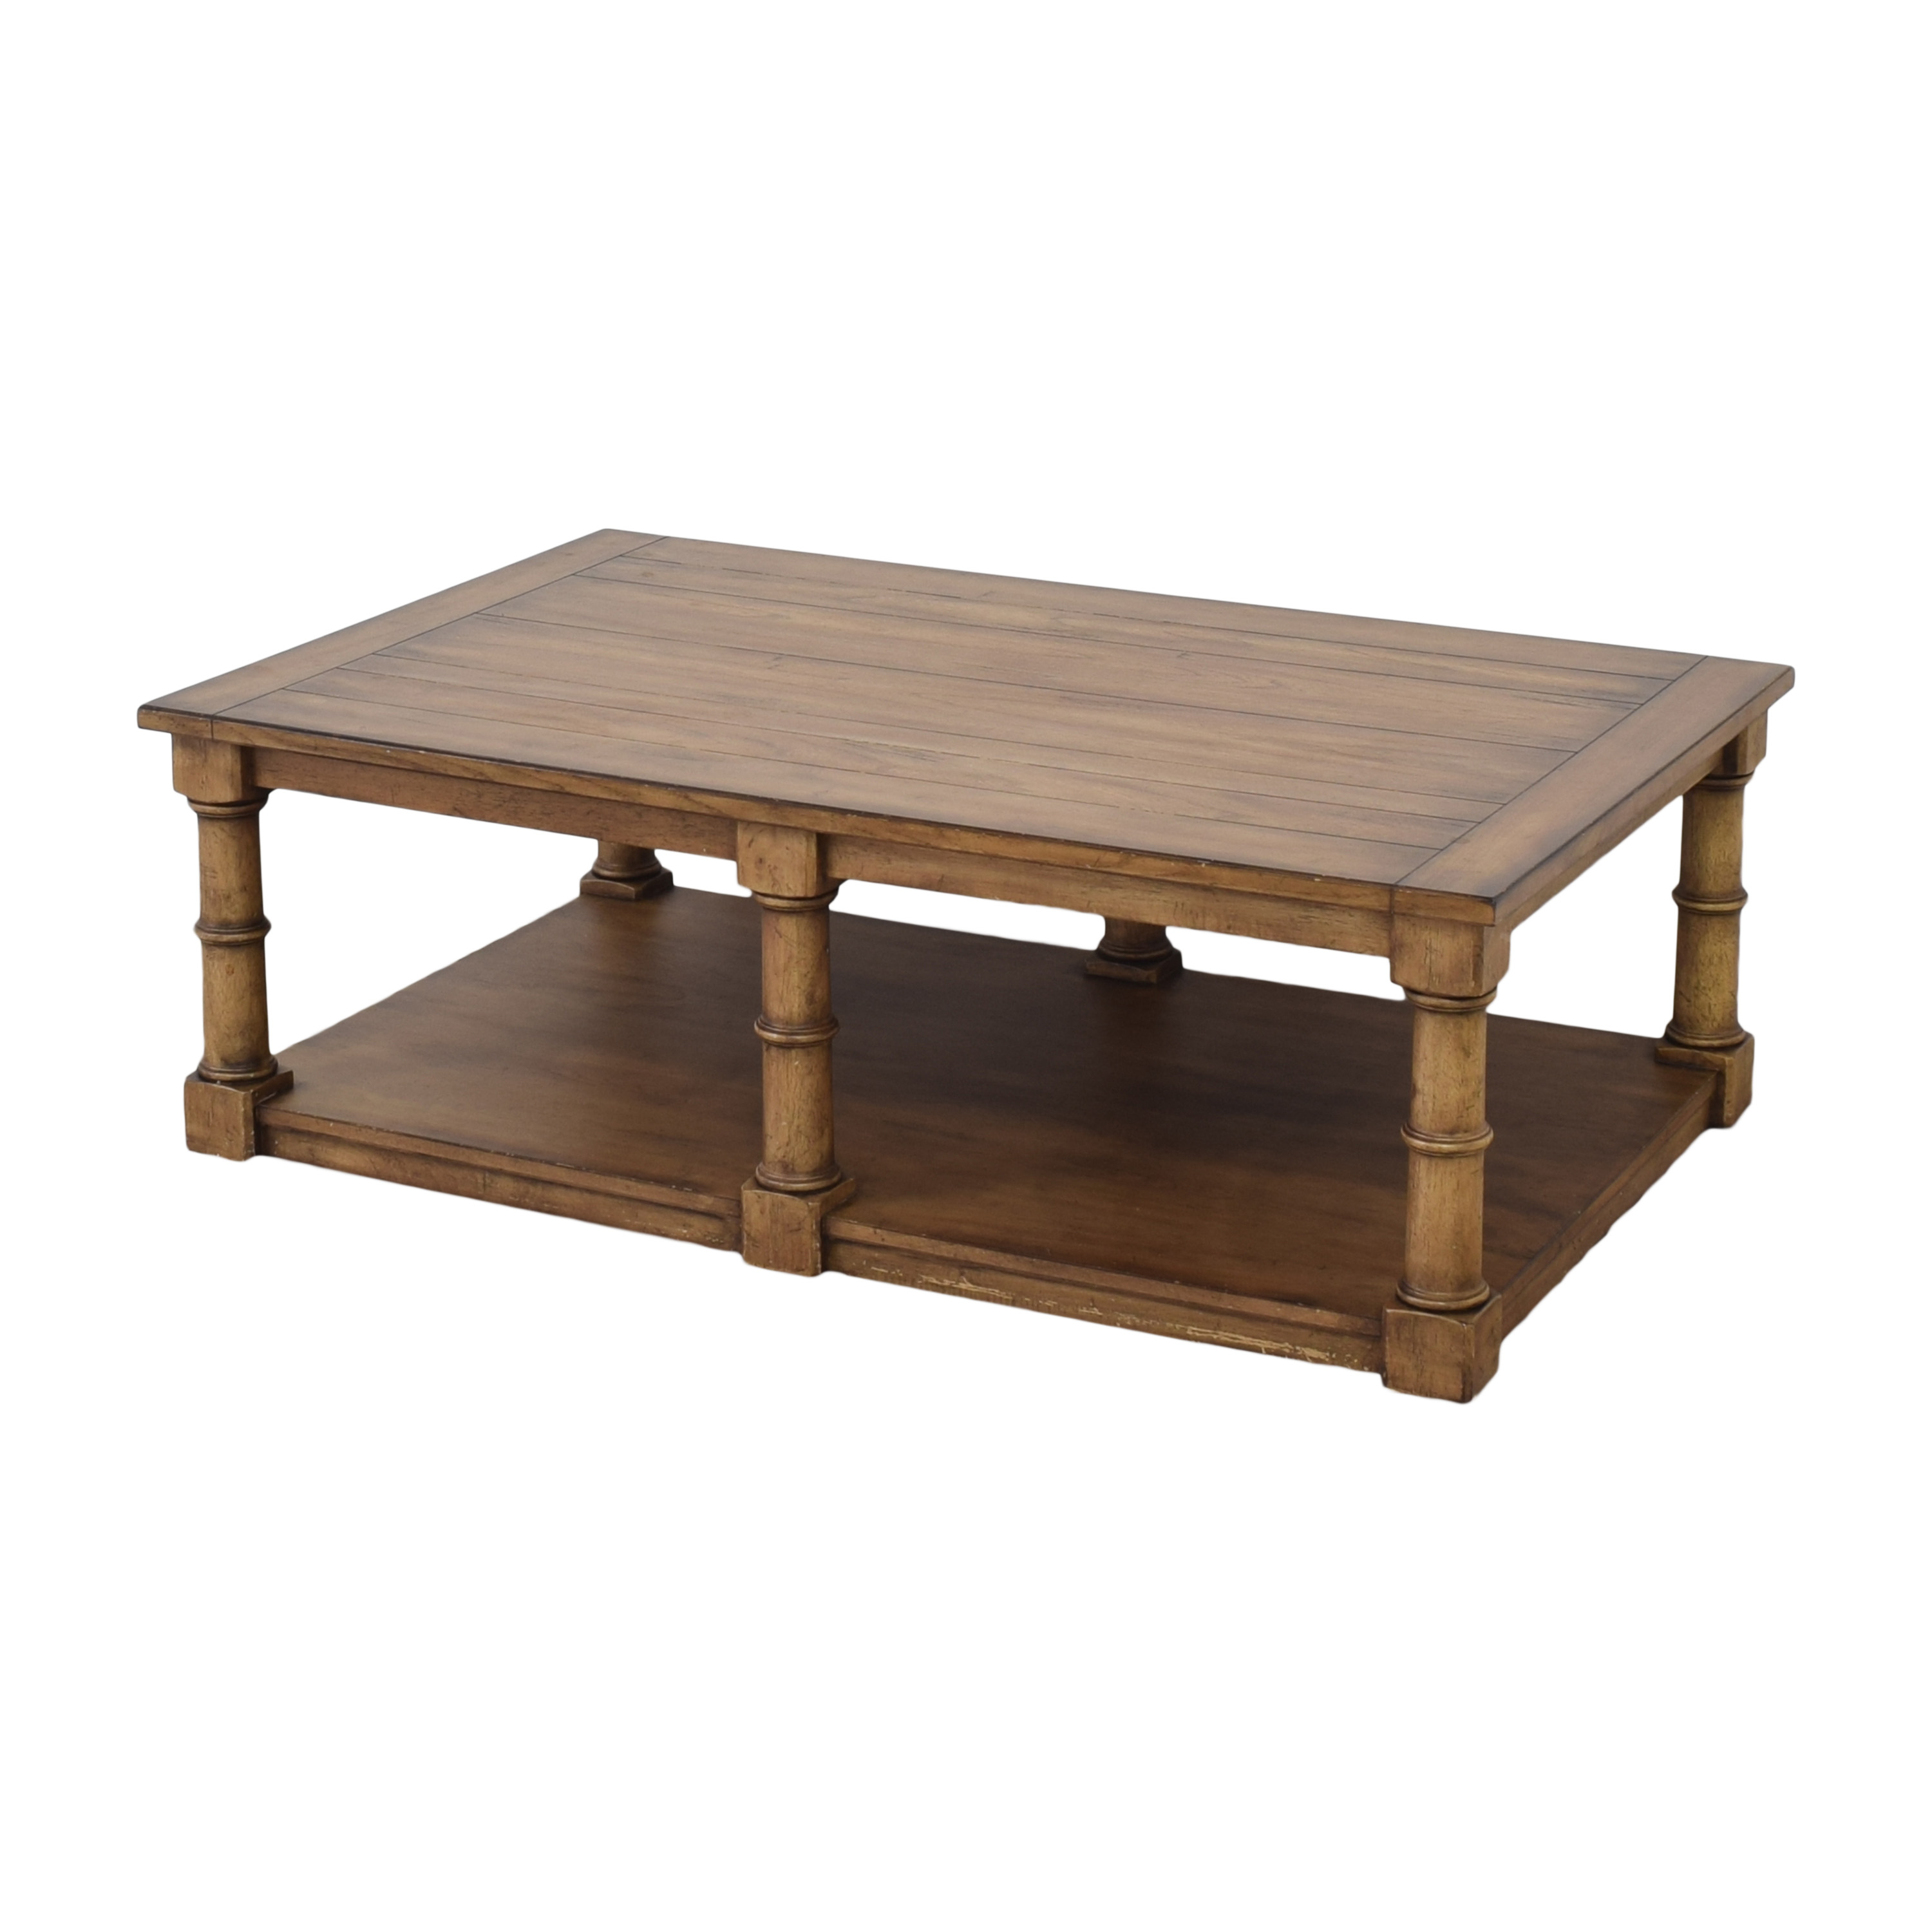 Ethan Allen Ethan Allen Storage Coffee Table discount